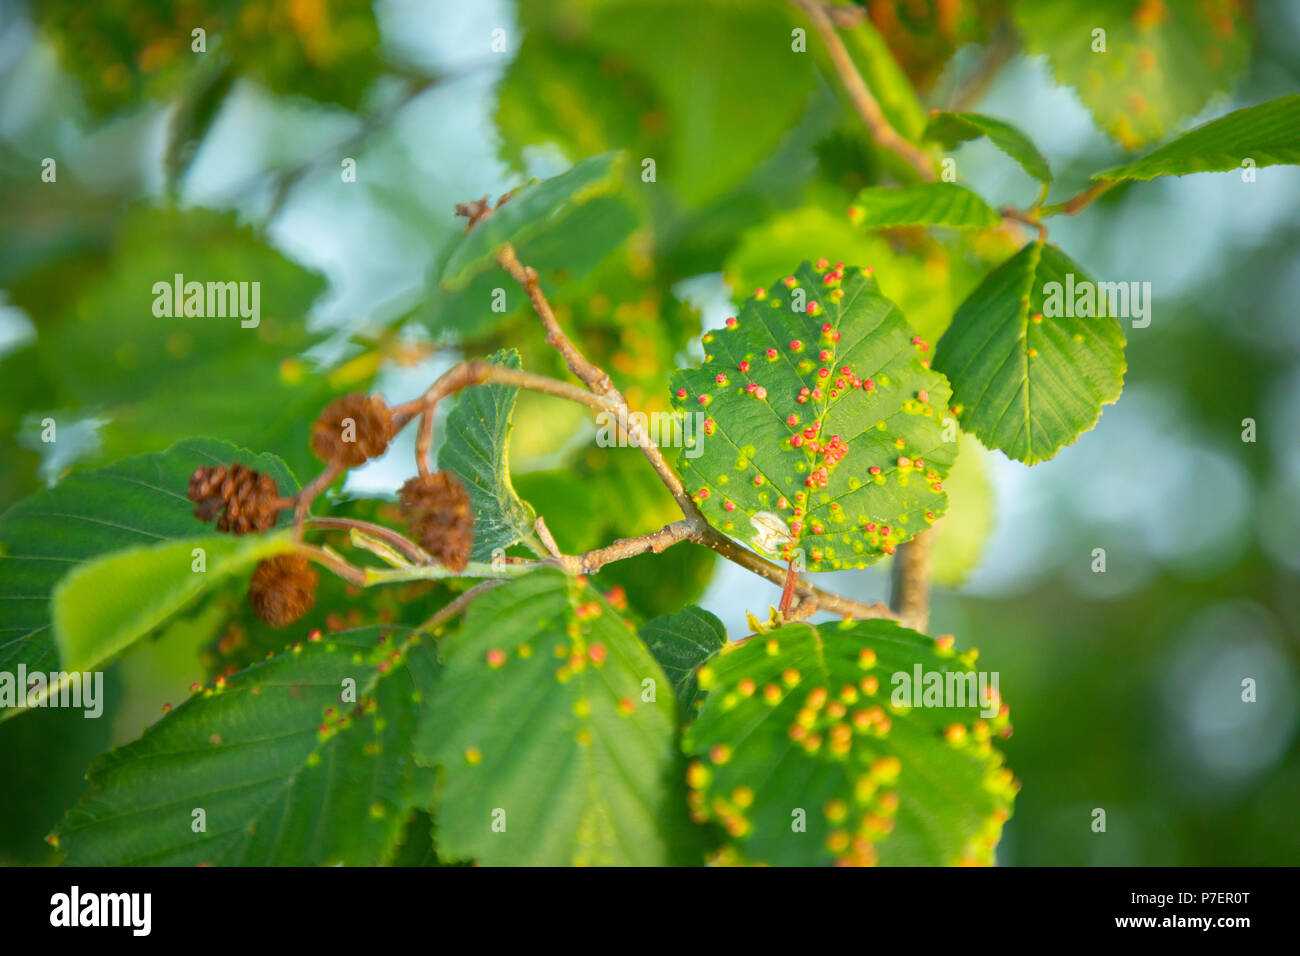 Tree leaves with rust colored spots illness - Stock Image